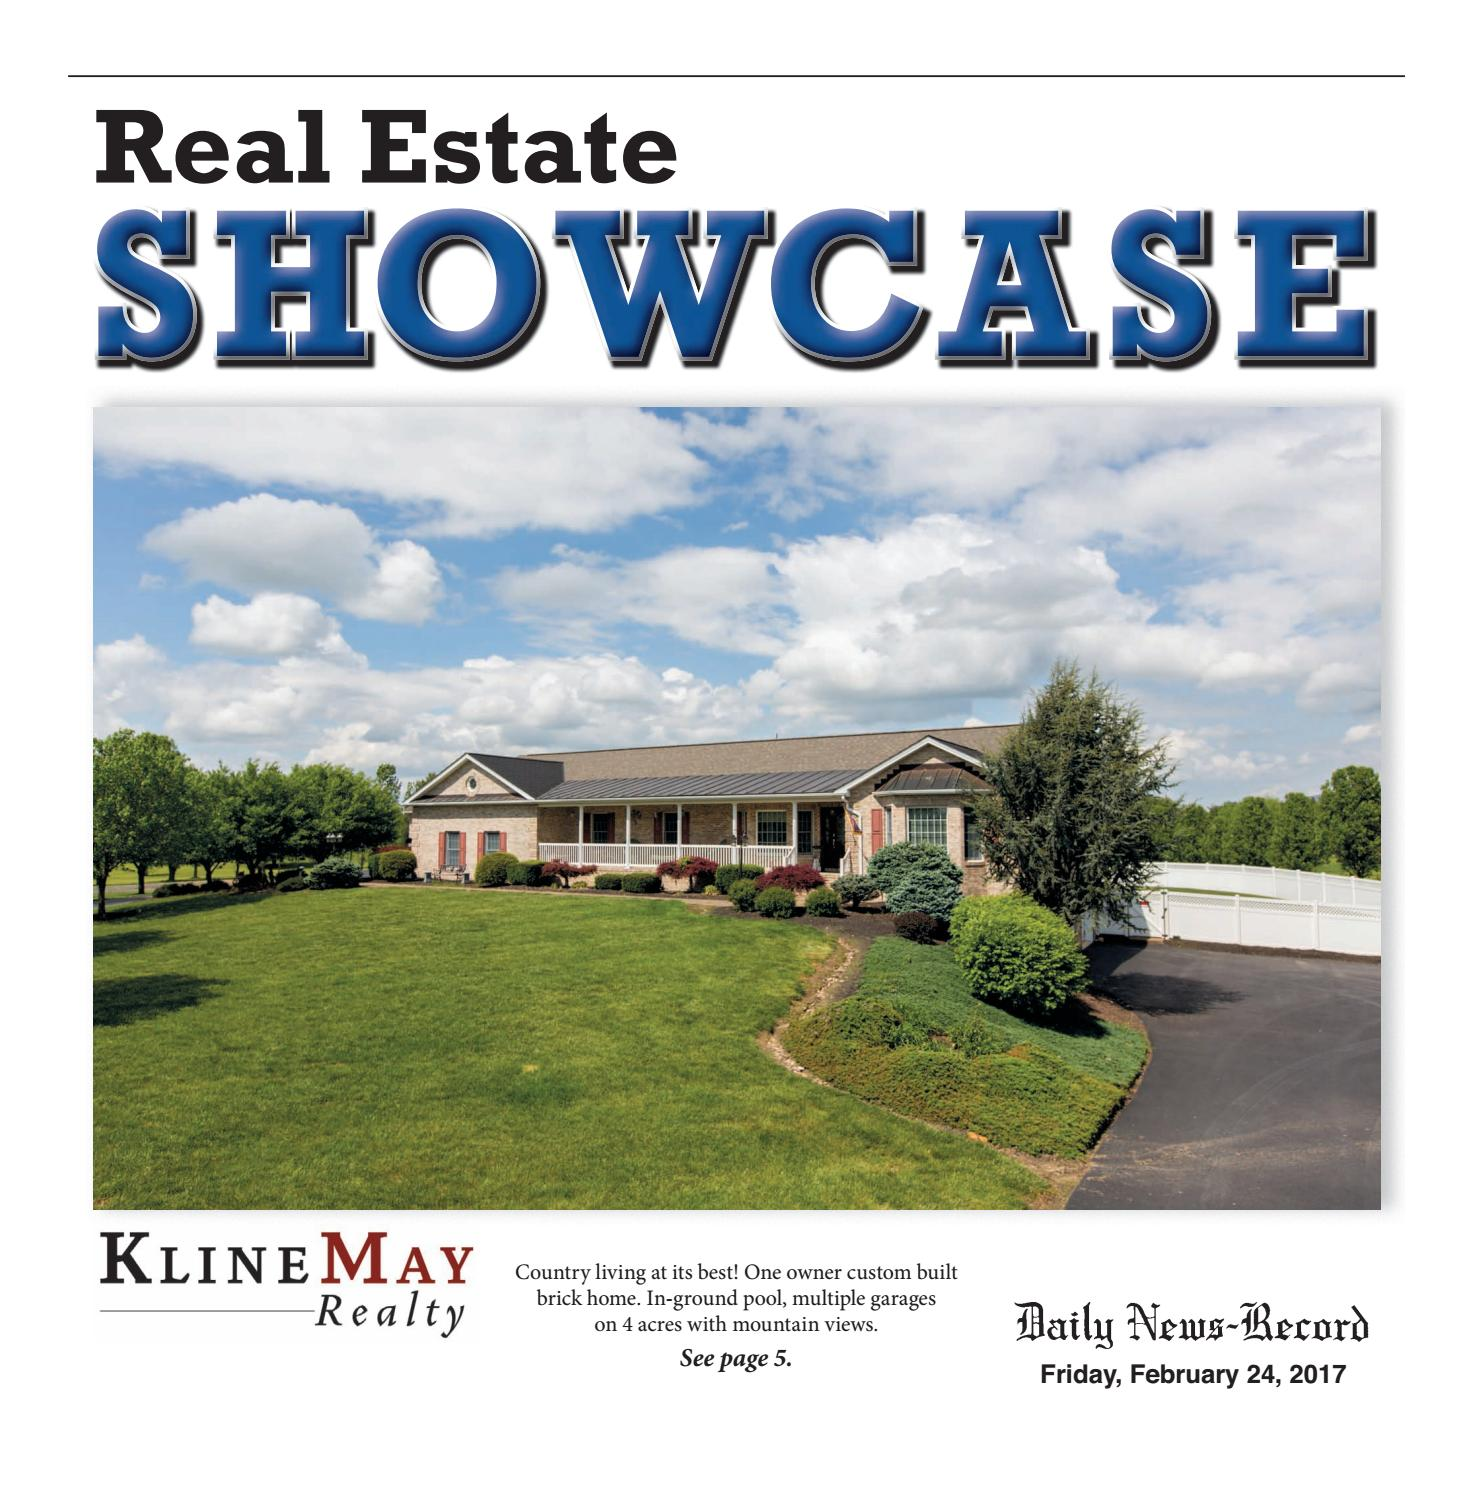 Real Estate Showcase By Daily News-Record